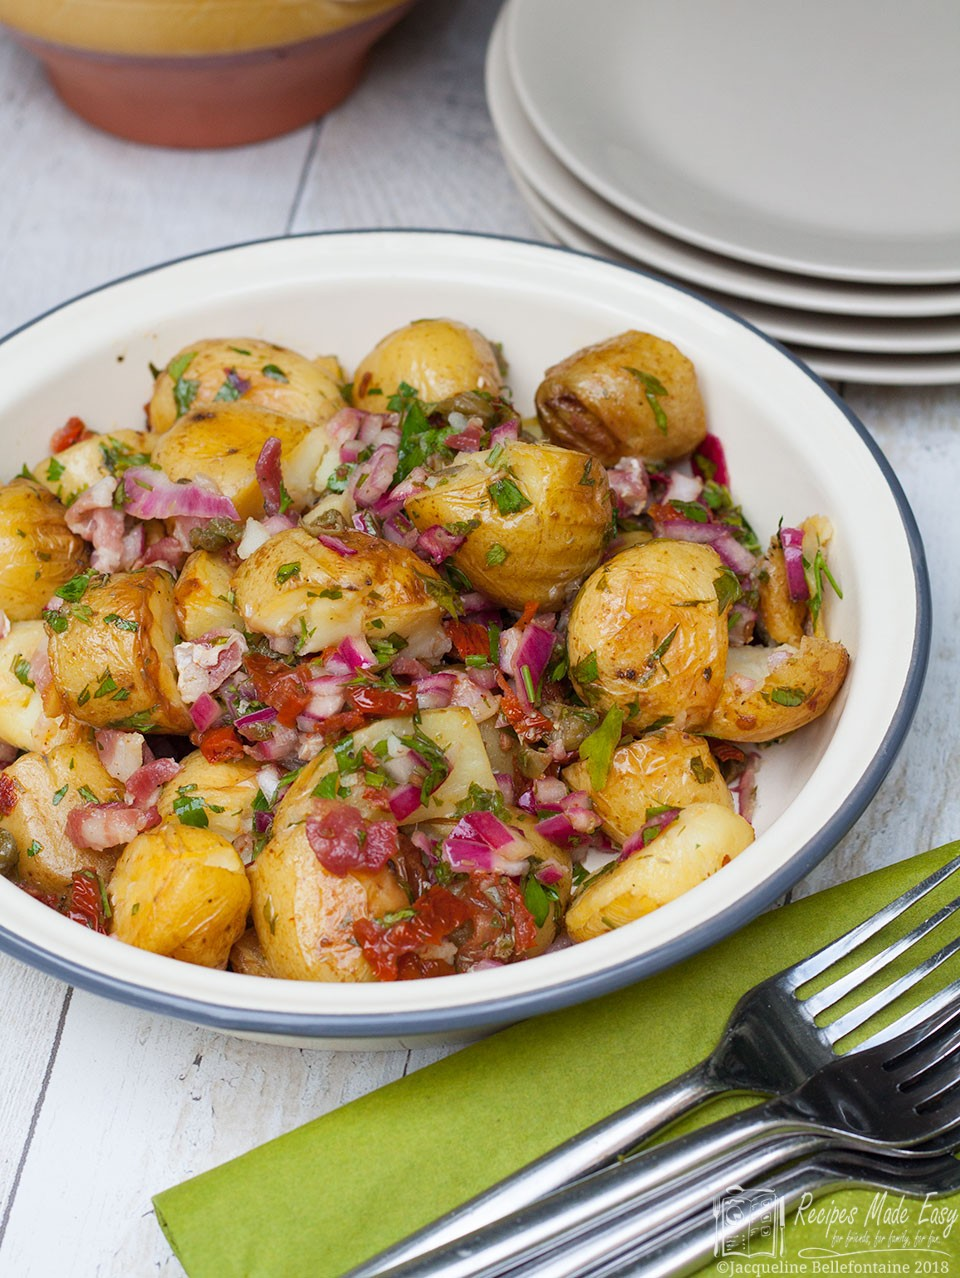 Piquant potato salad